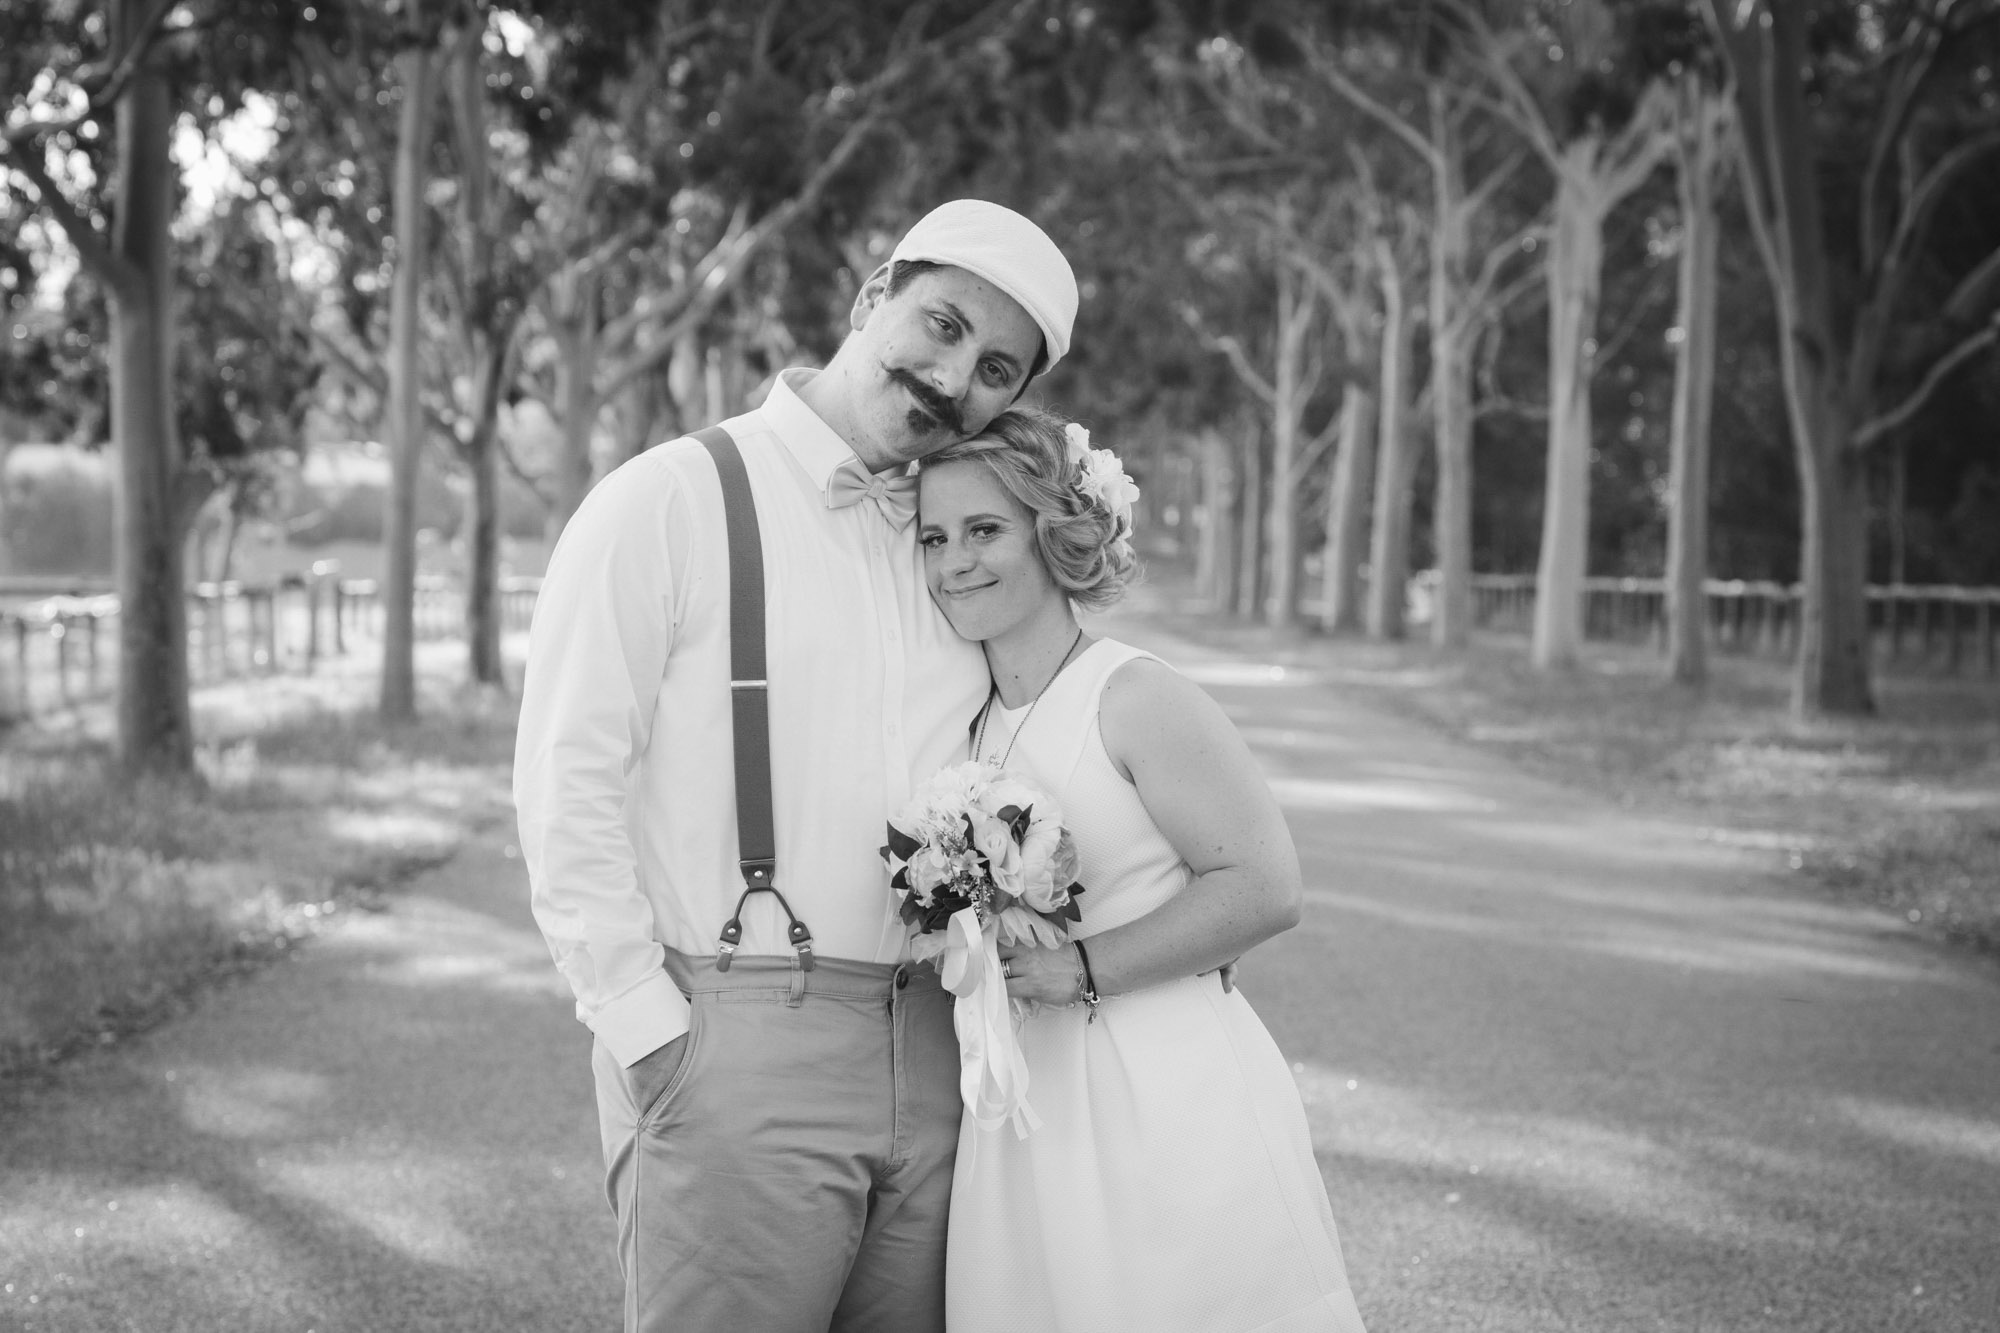 Angie-Roe-Photography-Wedding-Perth-Northam-Wheatbelt-Country-Rural (159).jpg